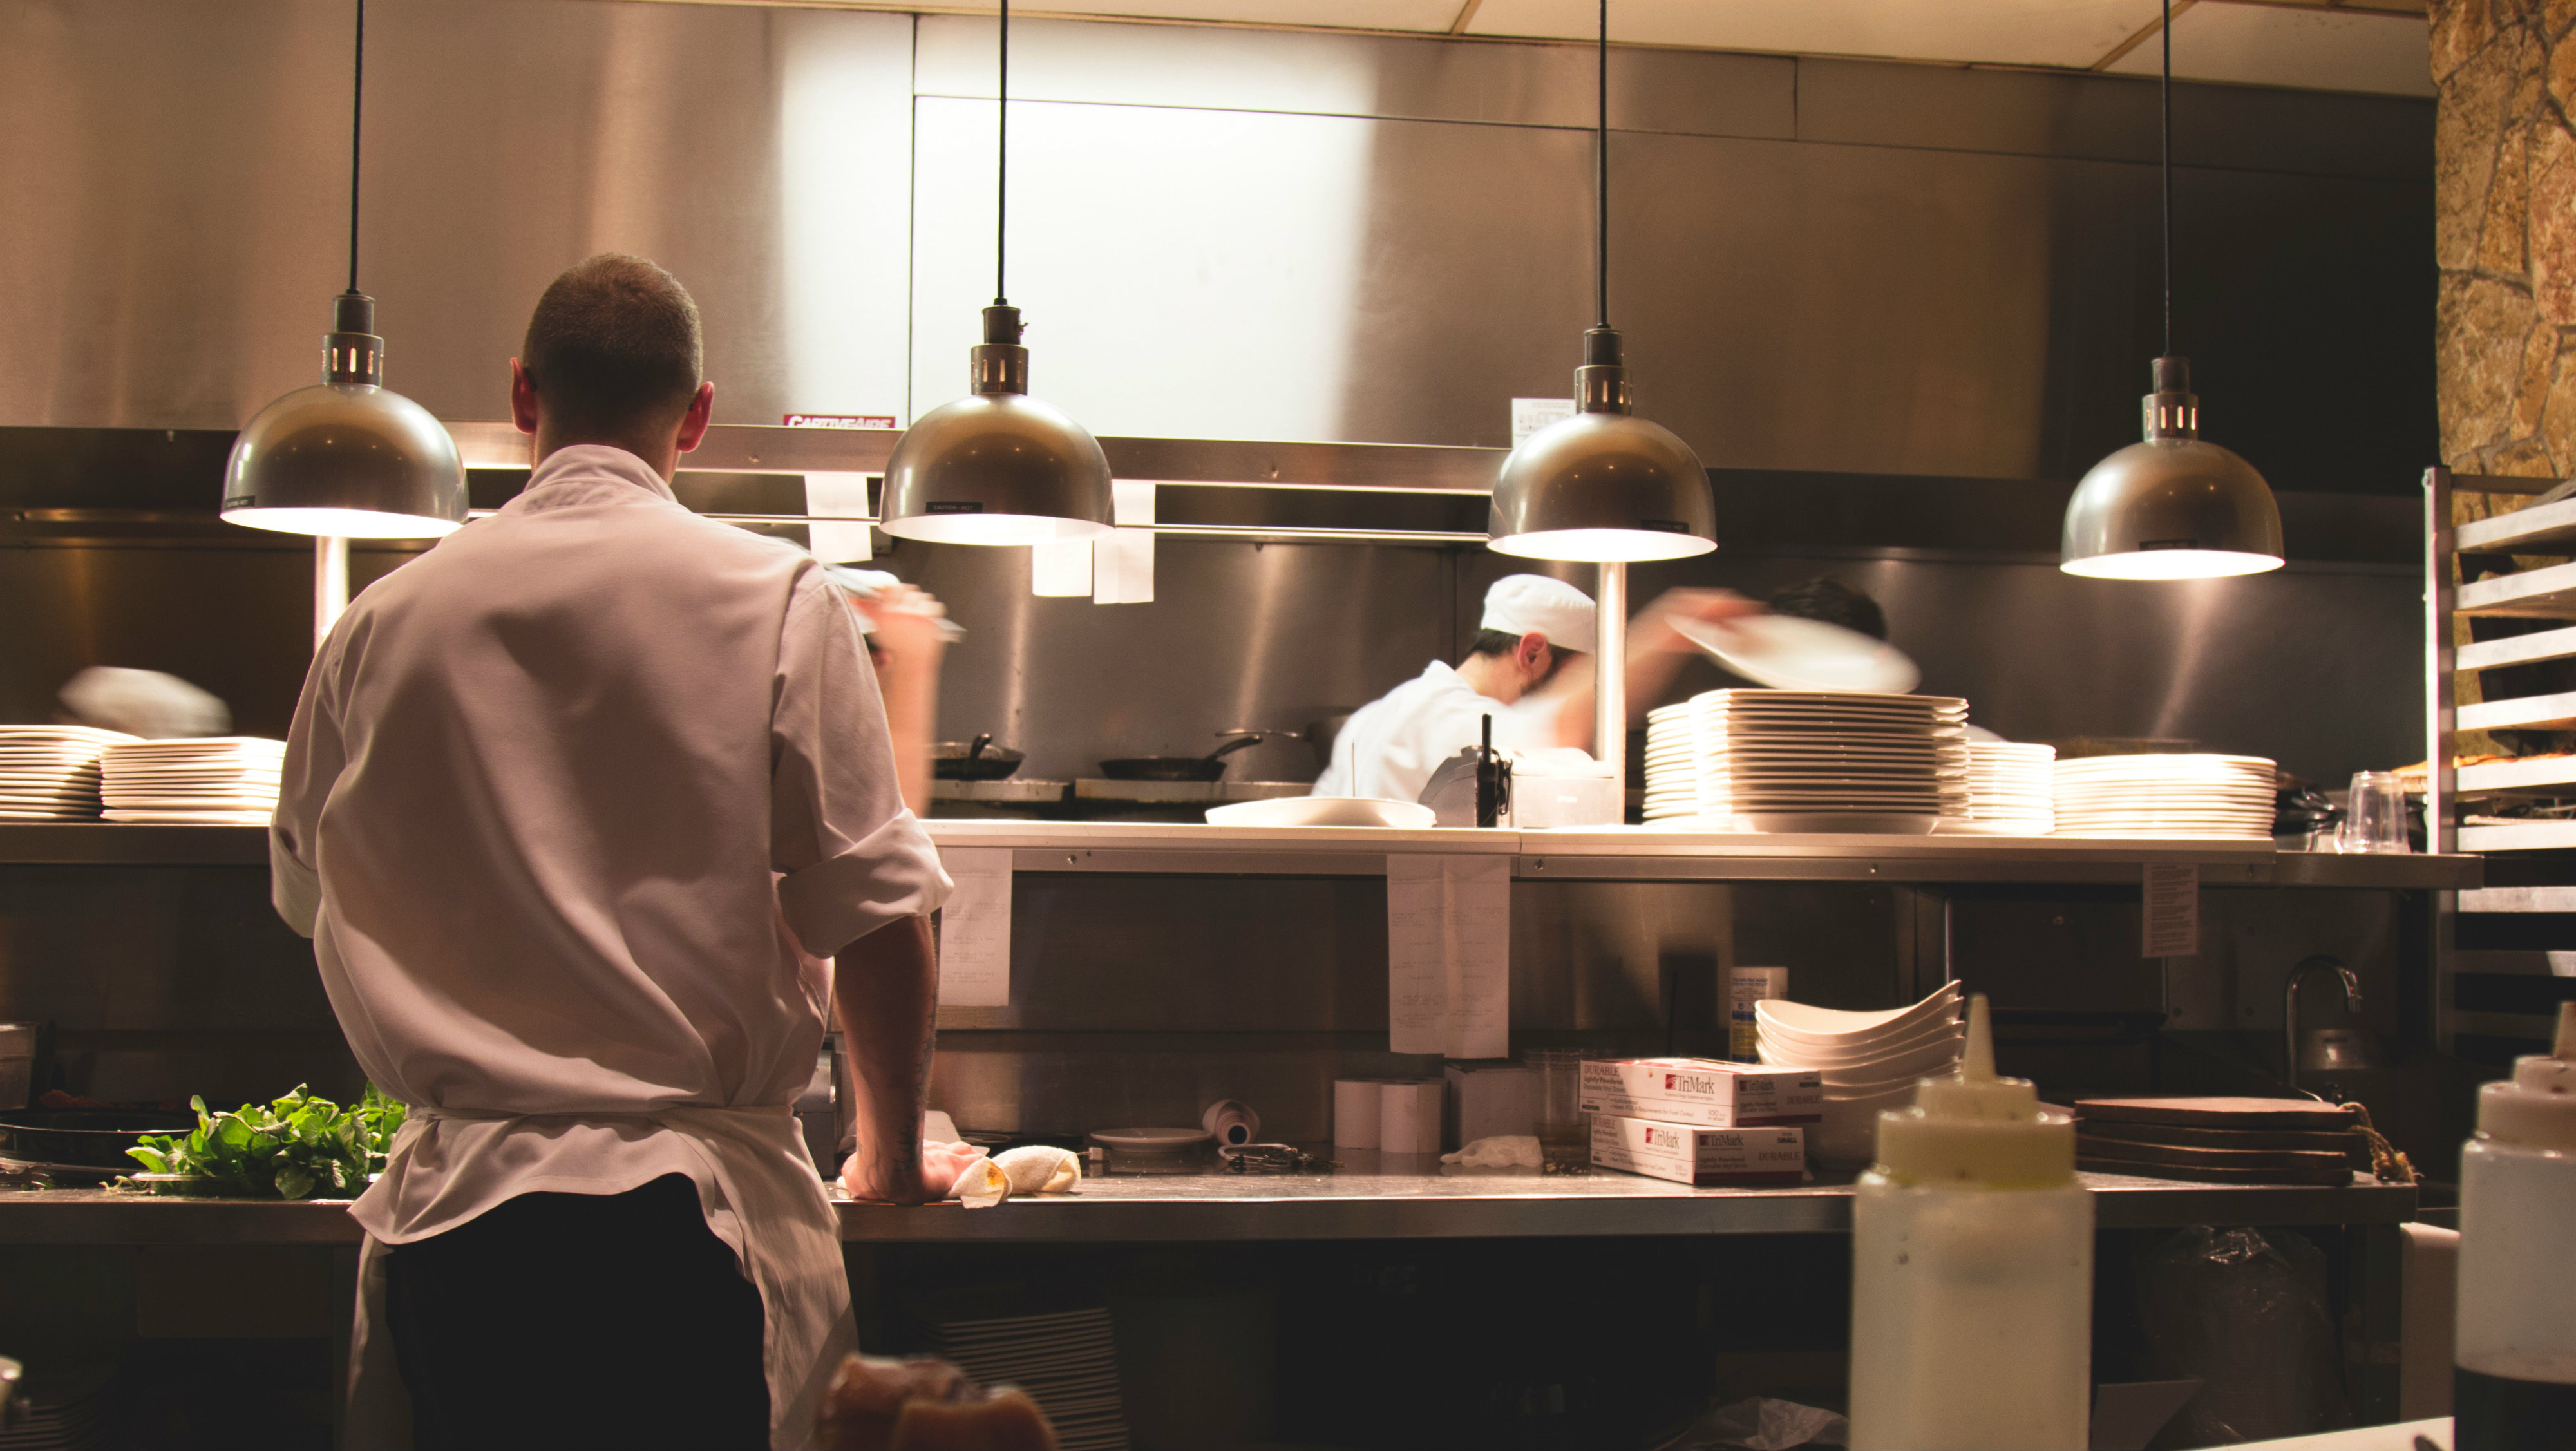 Workers in a kitchen.